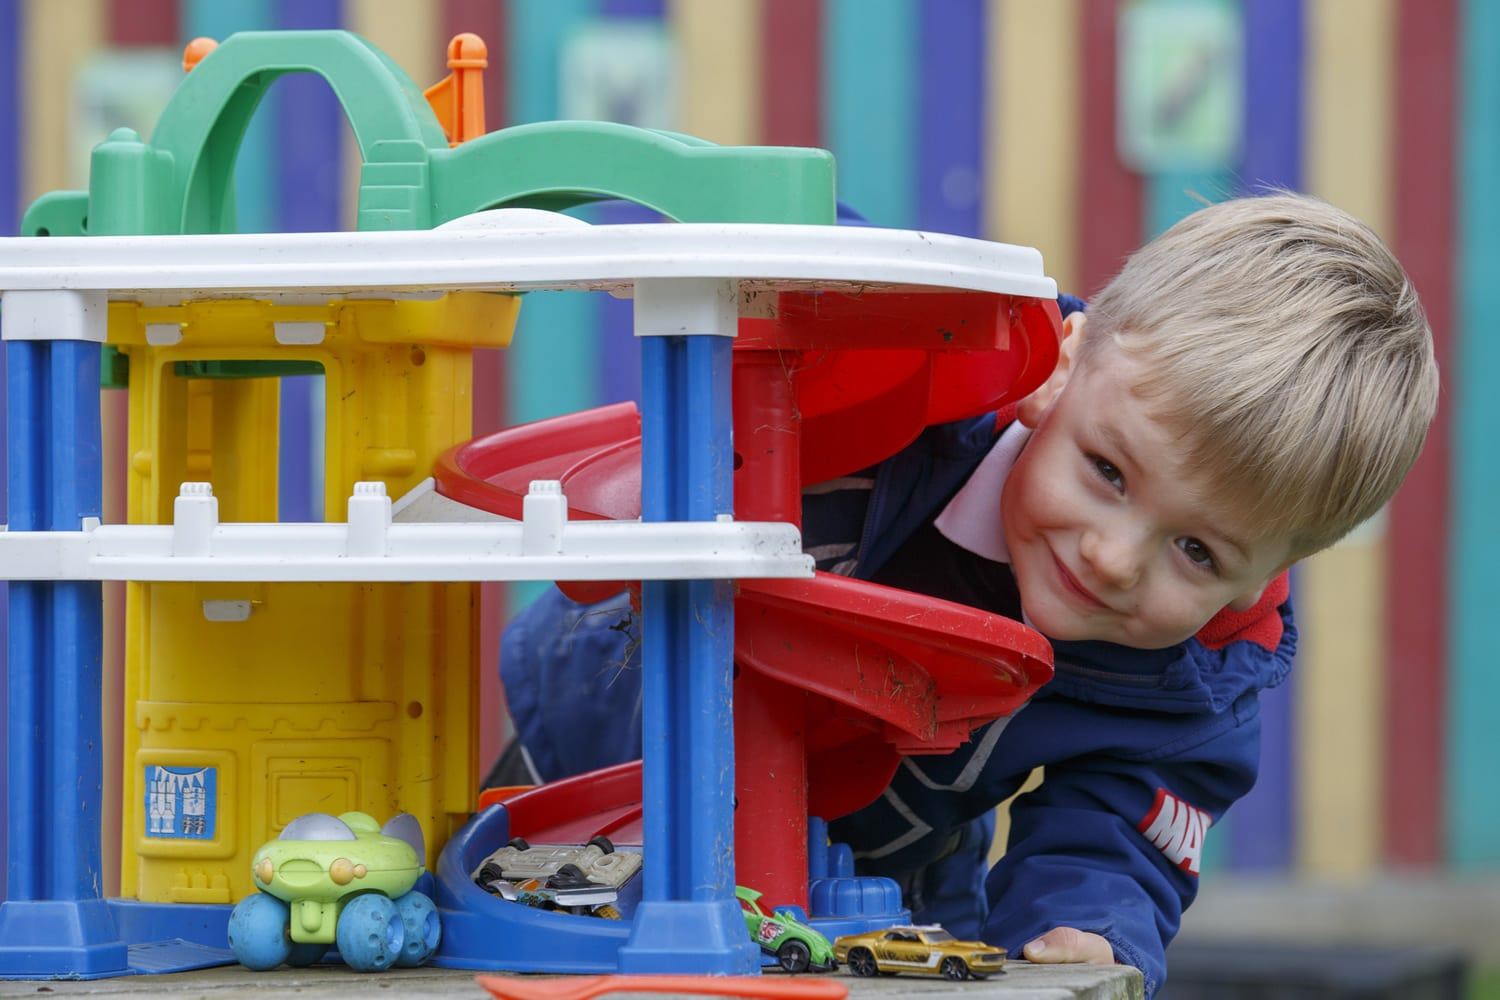 Nursery child playing with toy garage